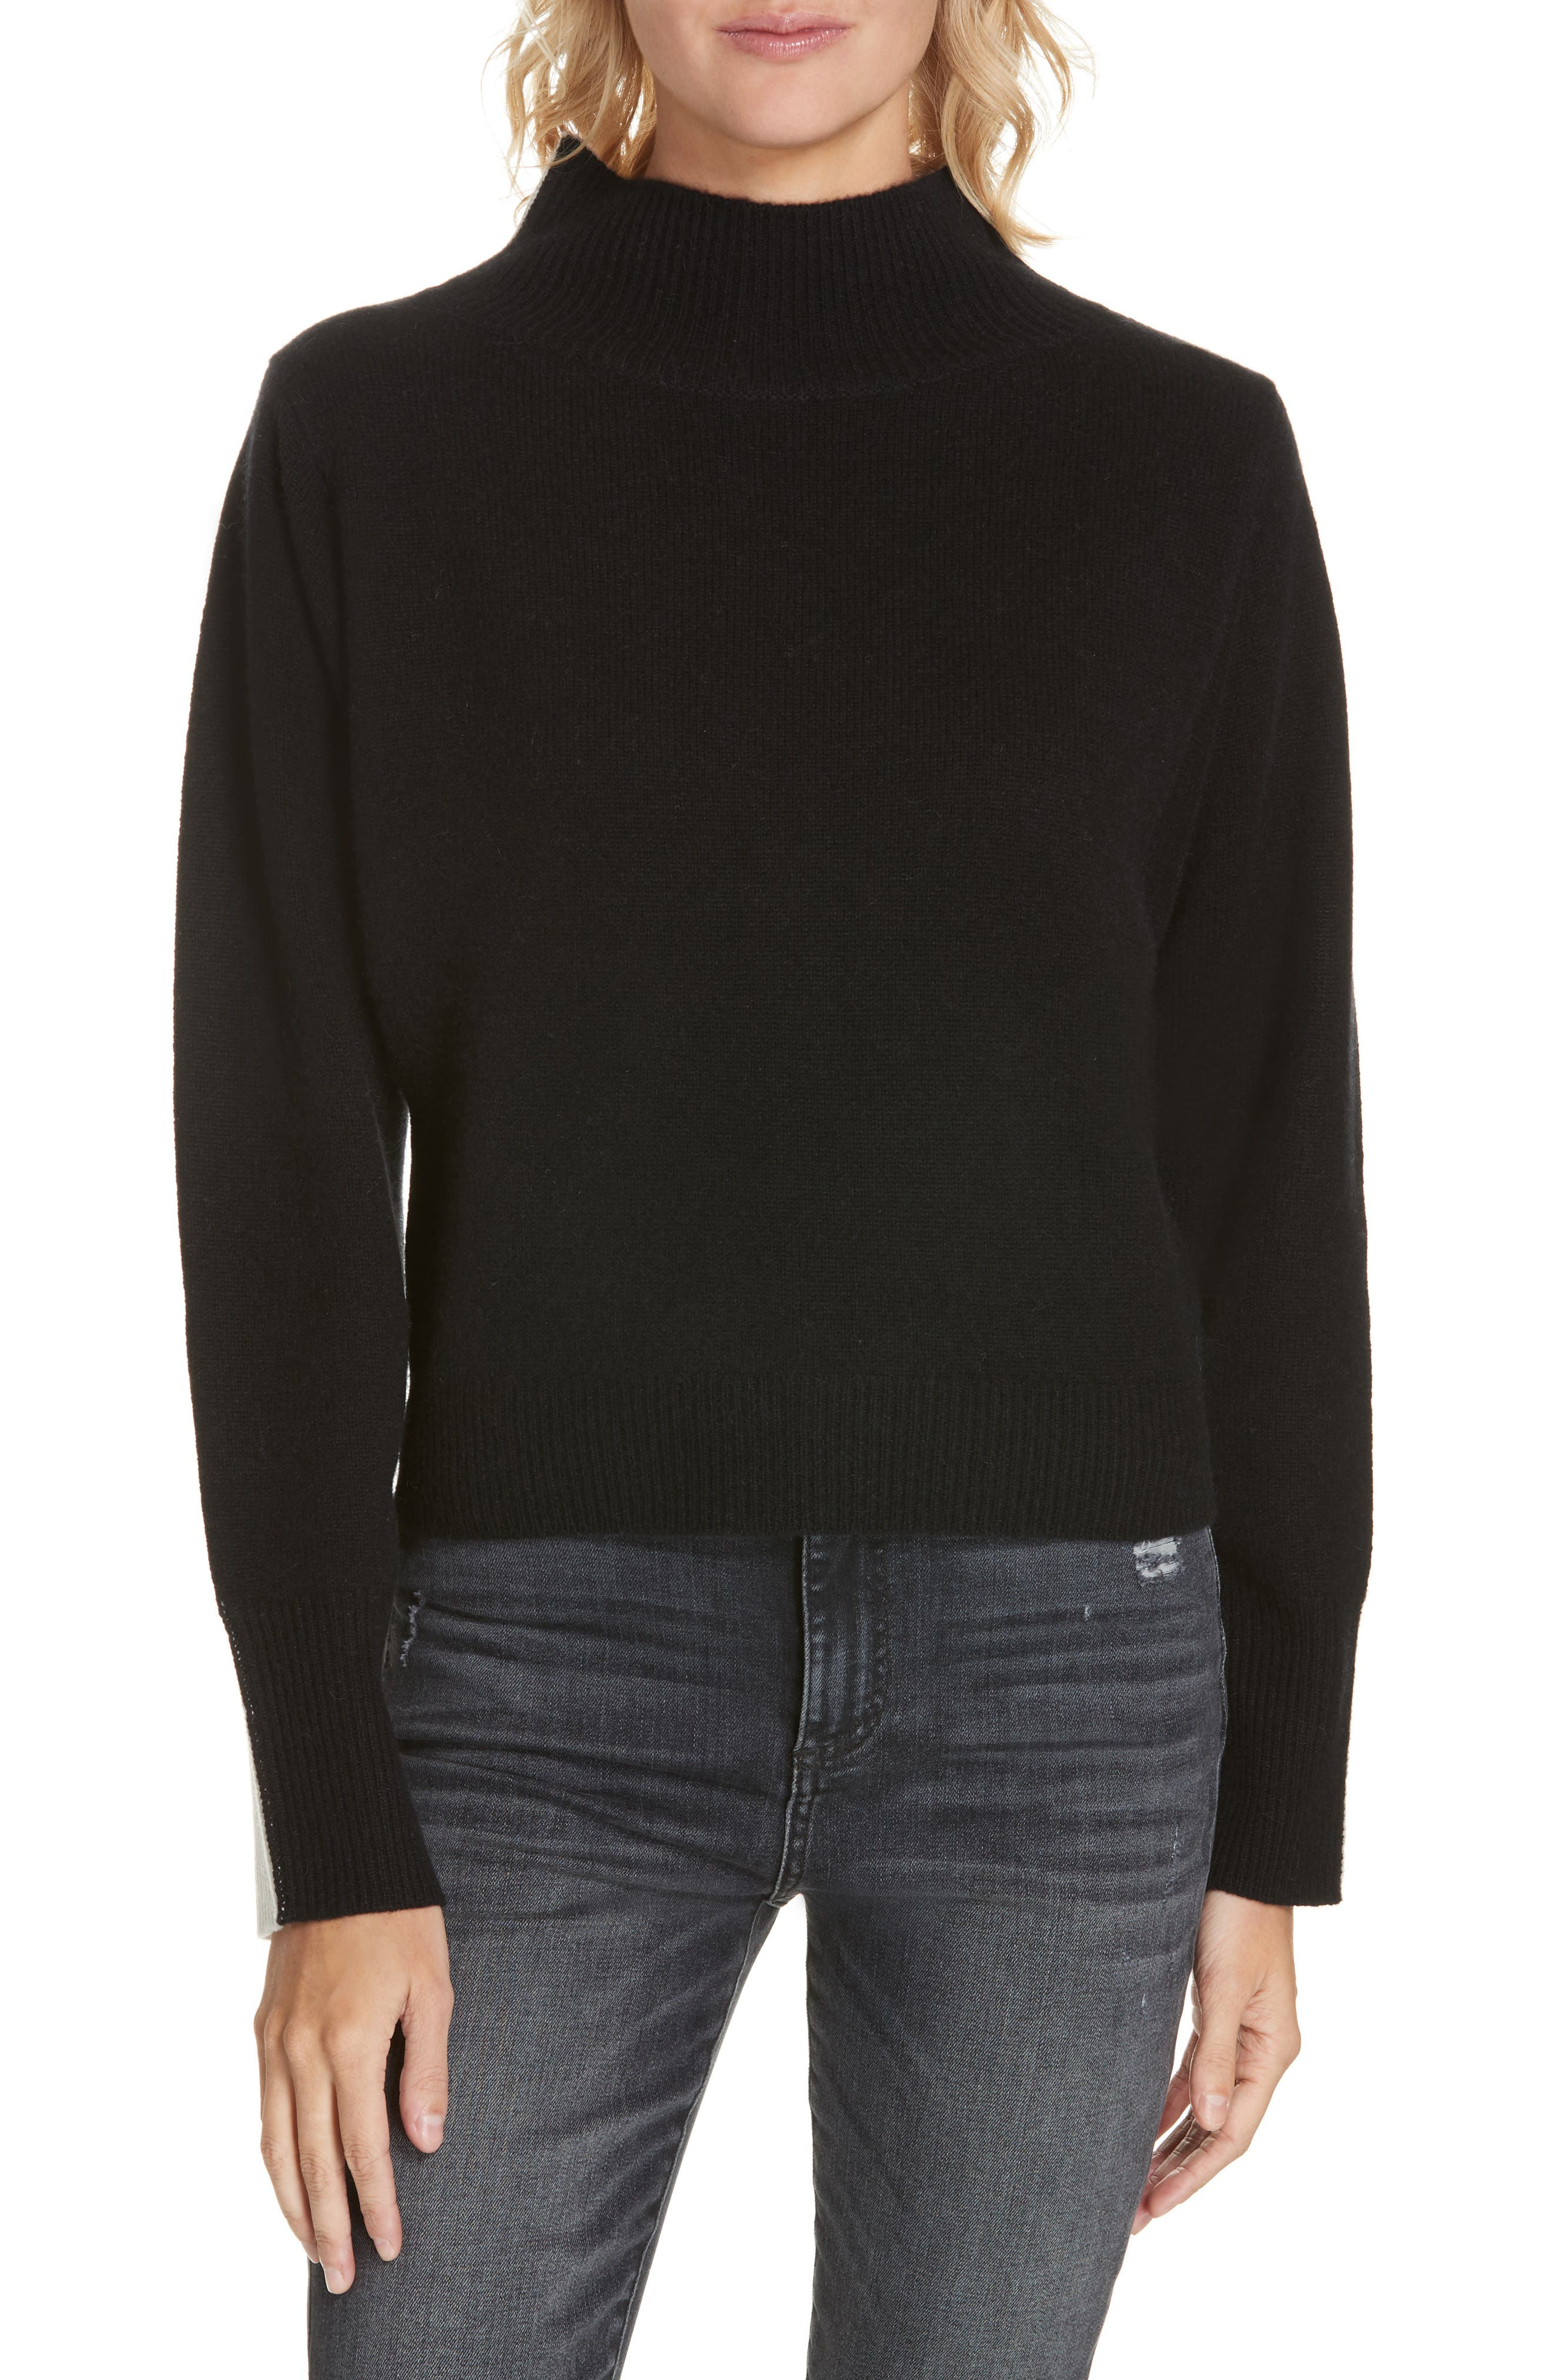 NORDSTROM SIGNATURE, Colorblock Cashmere Sweater, Main thumbnail 1, color, BLACK- IVORY COMBO